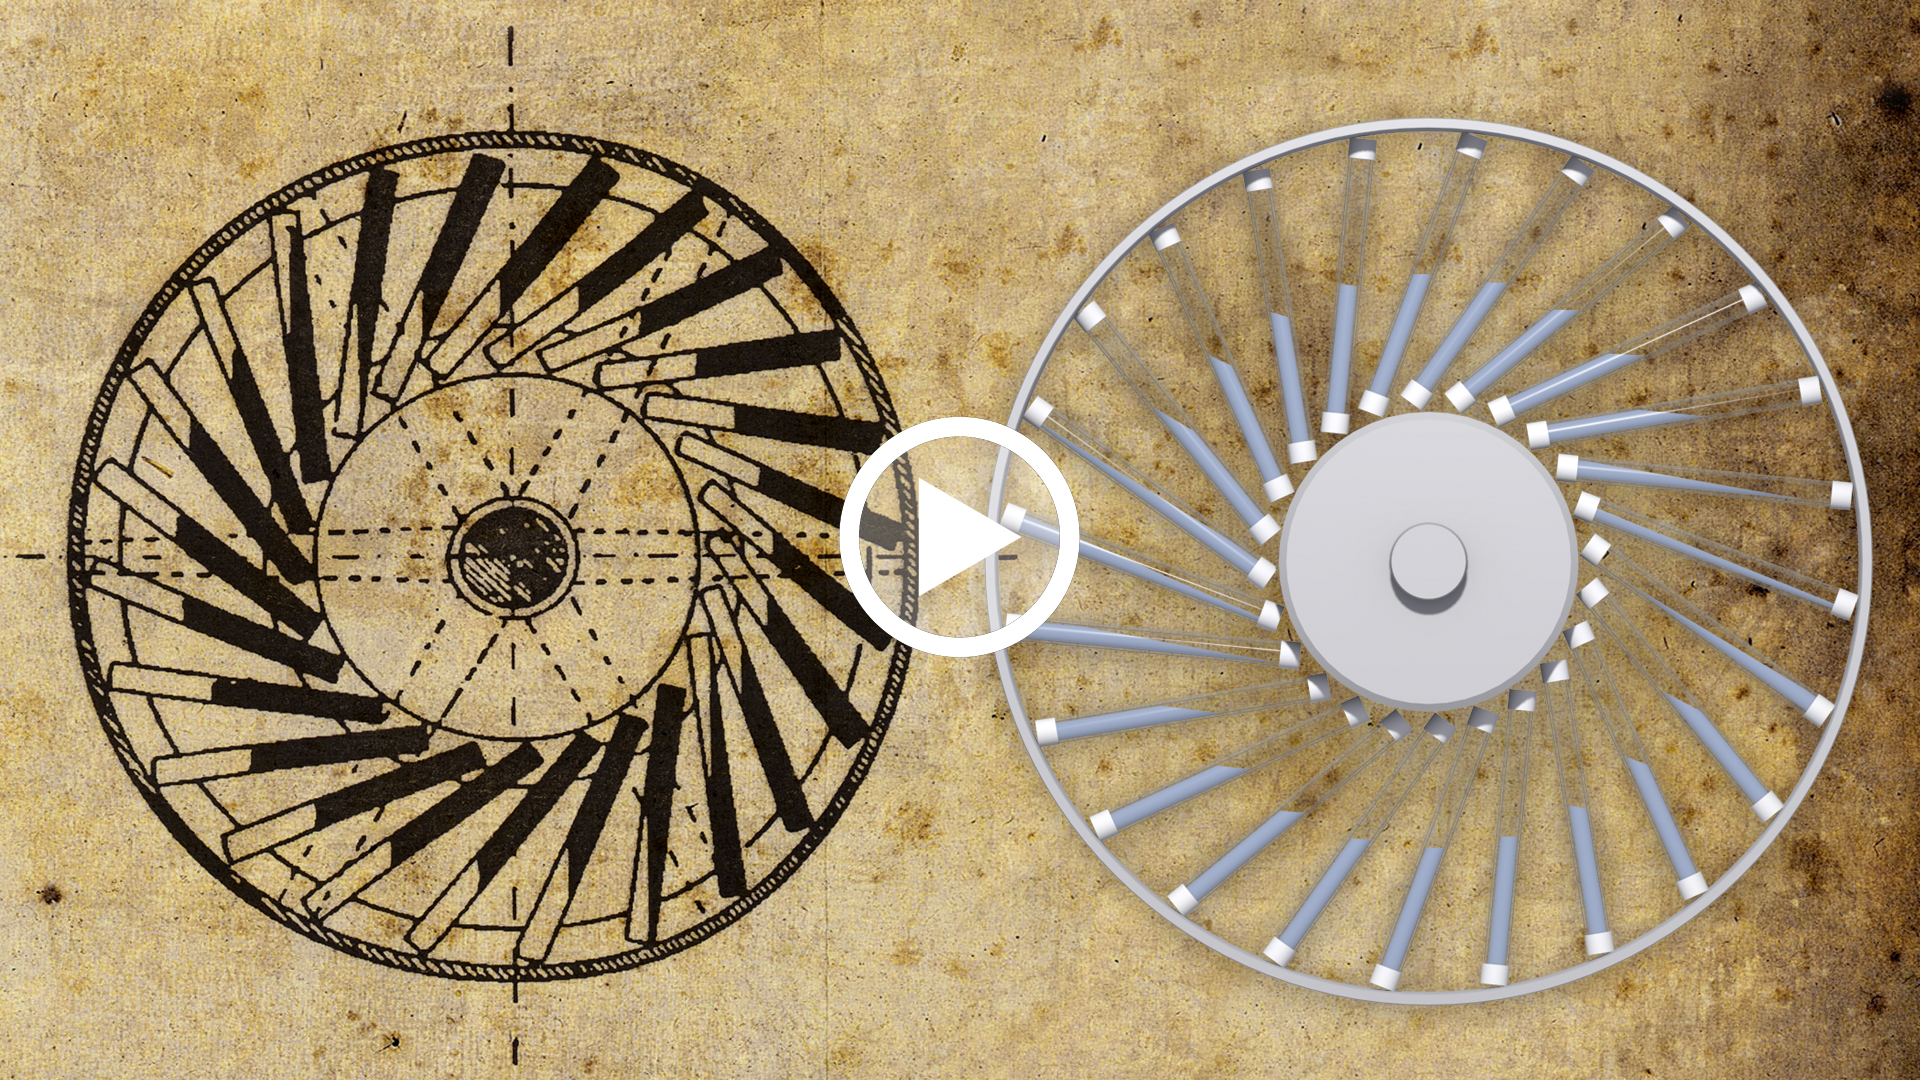 videoPerpetual wheel with oscillating masses